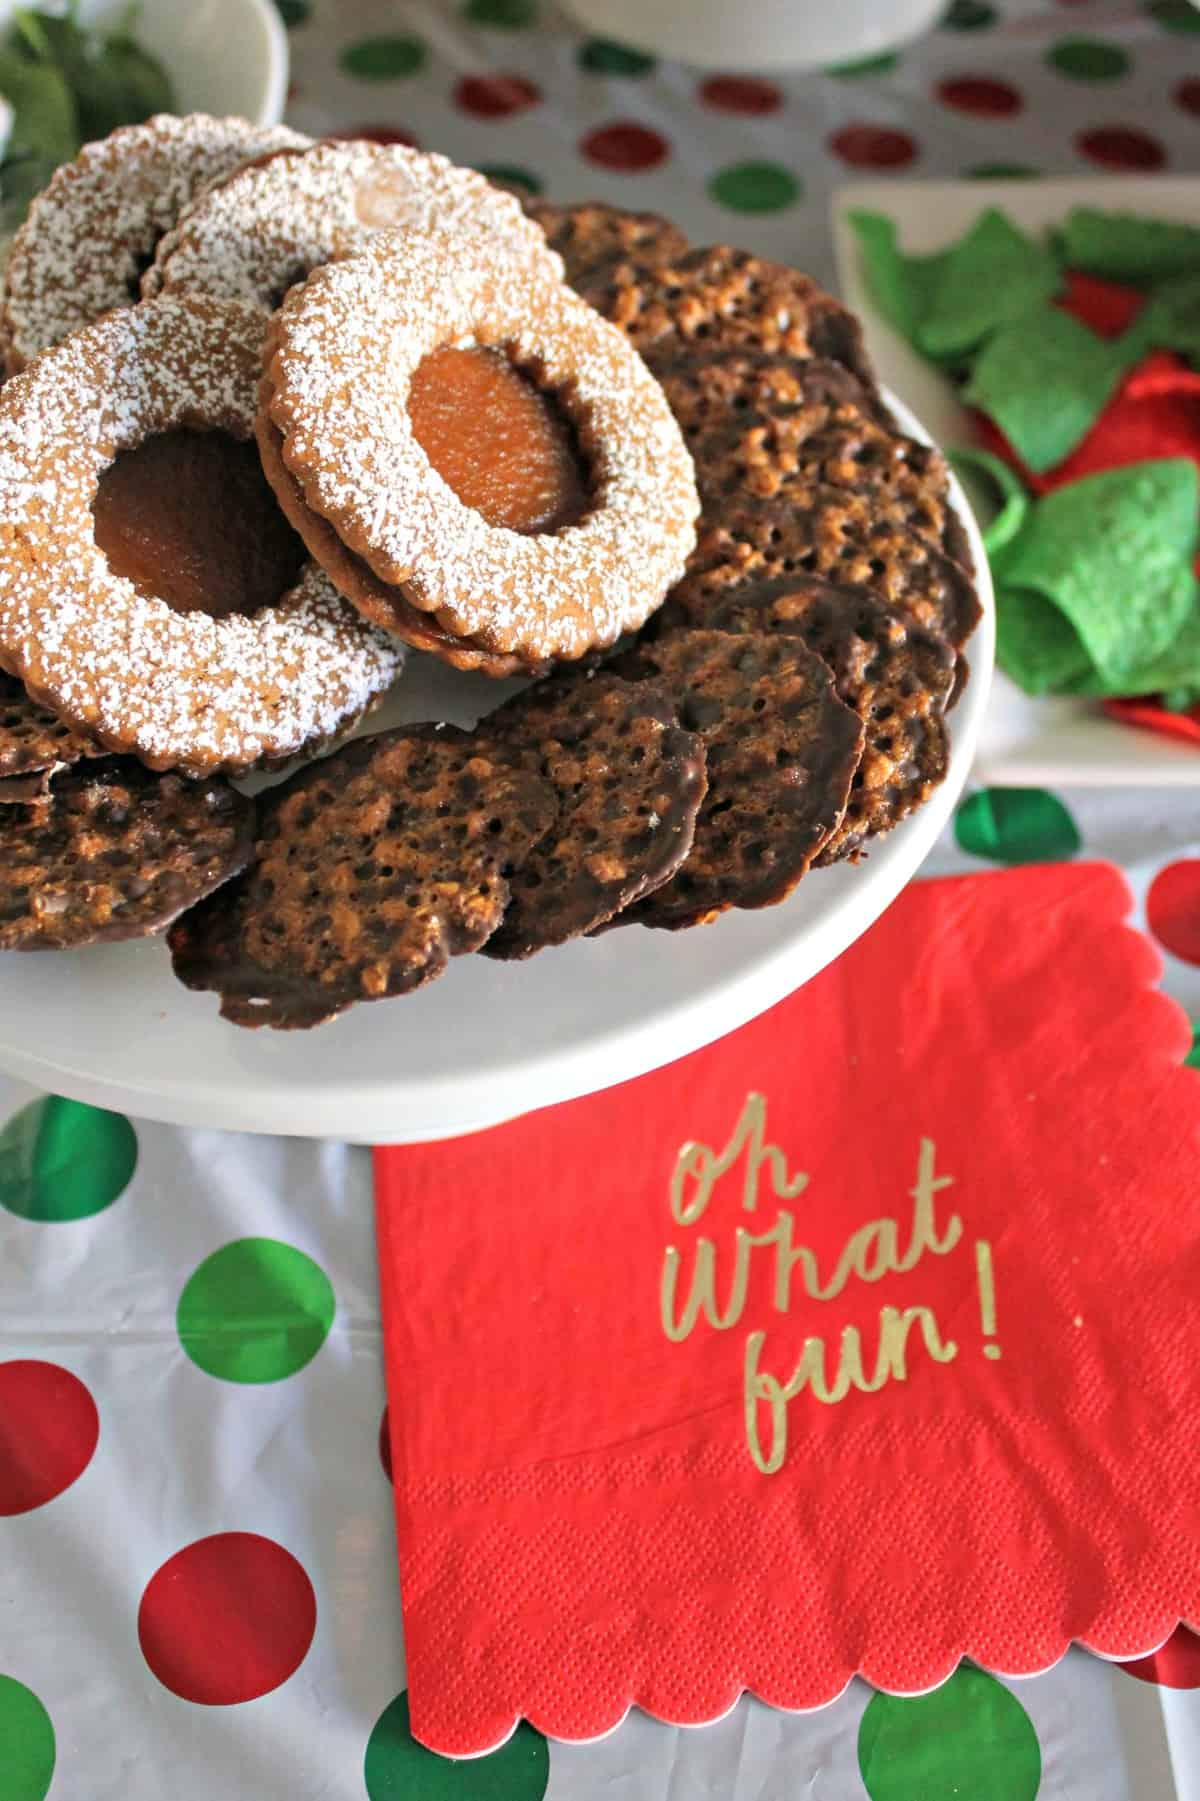 Peppermint Mocha Truffle Thumbprint Cookies! Chocolaty with a smooth truffle center, they're a festive addition to a cookie exchange or holiday buffet!